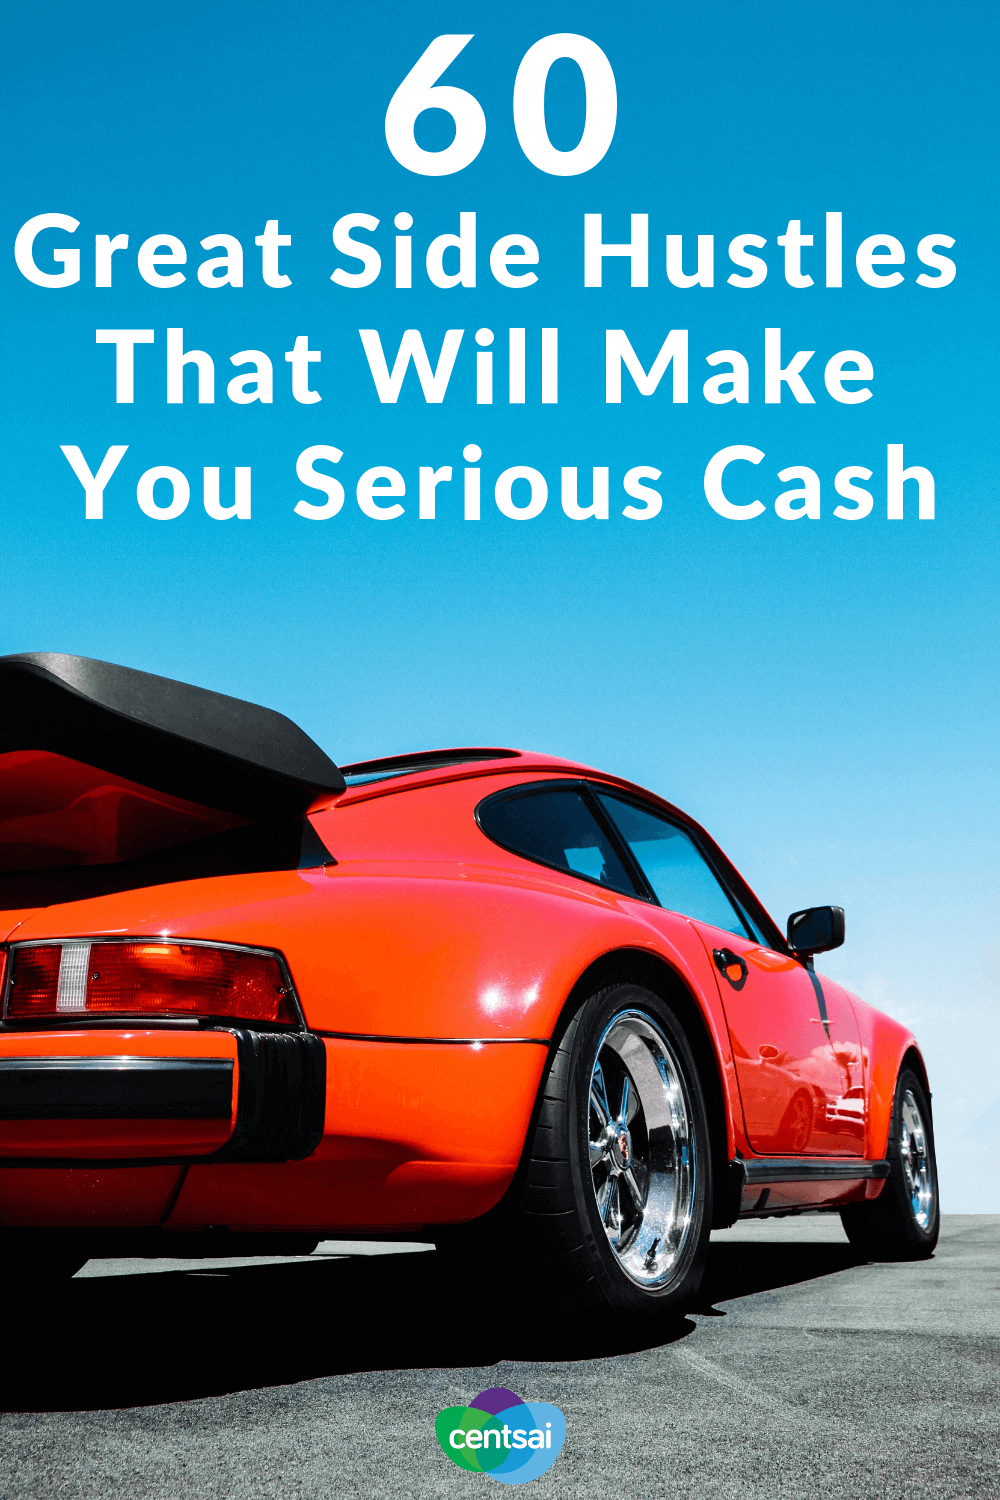 60 Great Side Hustles That Will Make You Serious Cash. Ever wish you had a little extra money? You don't have to sell your dog to get it. Check out these great side hustle ideas and get your moneymaking mojo on. #sidehustle #makemoney #extramoney